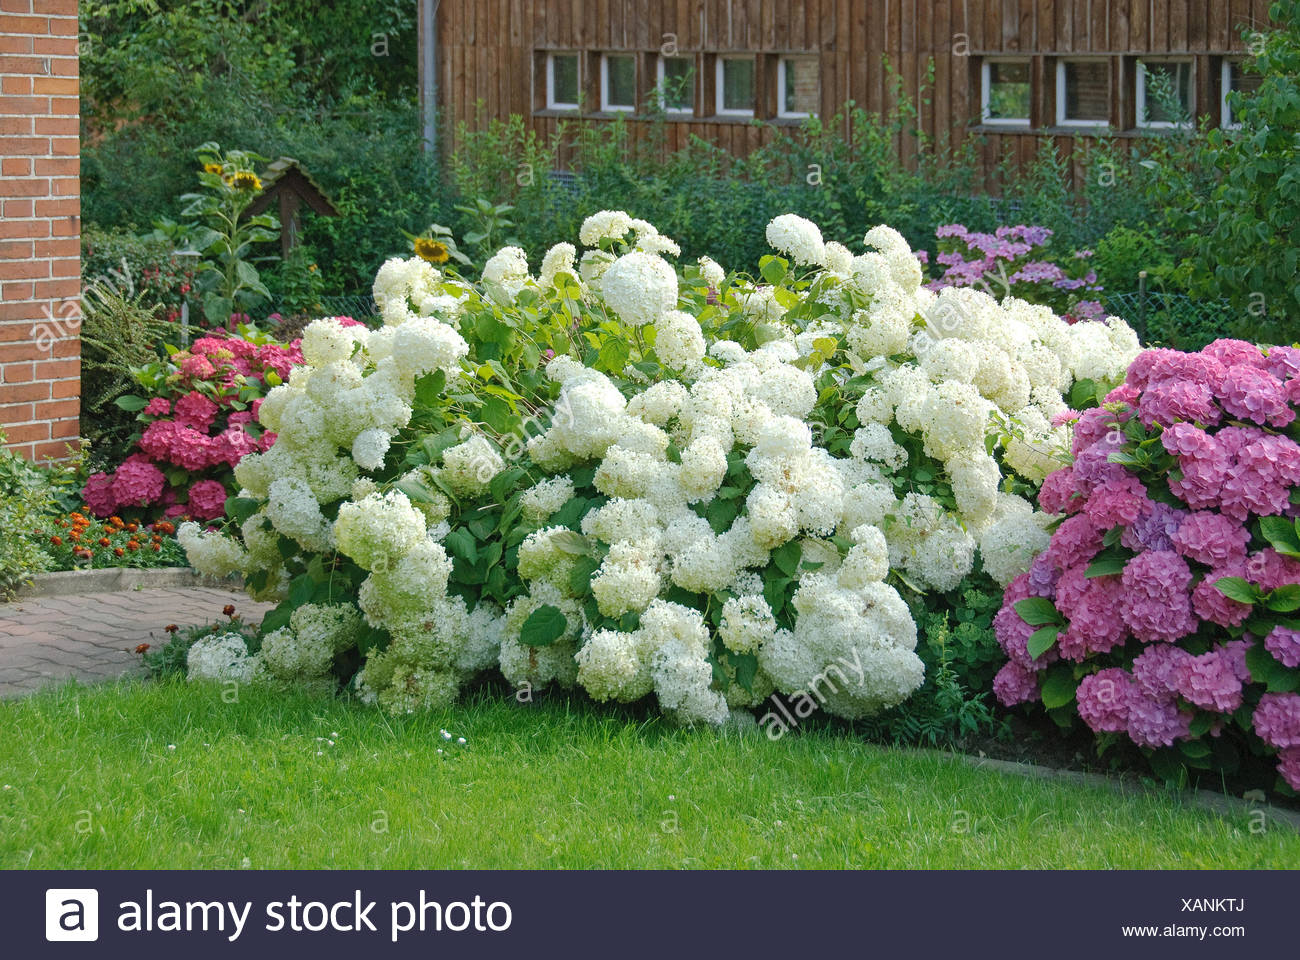 Wild Hydrangea Arborescens Annabelle Cultivar Together With Macrophylla